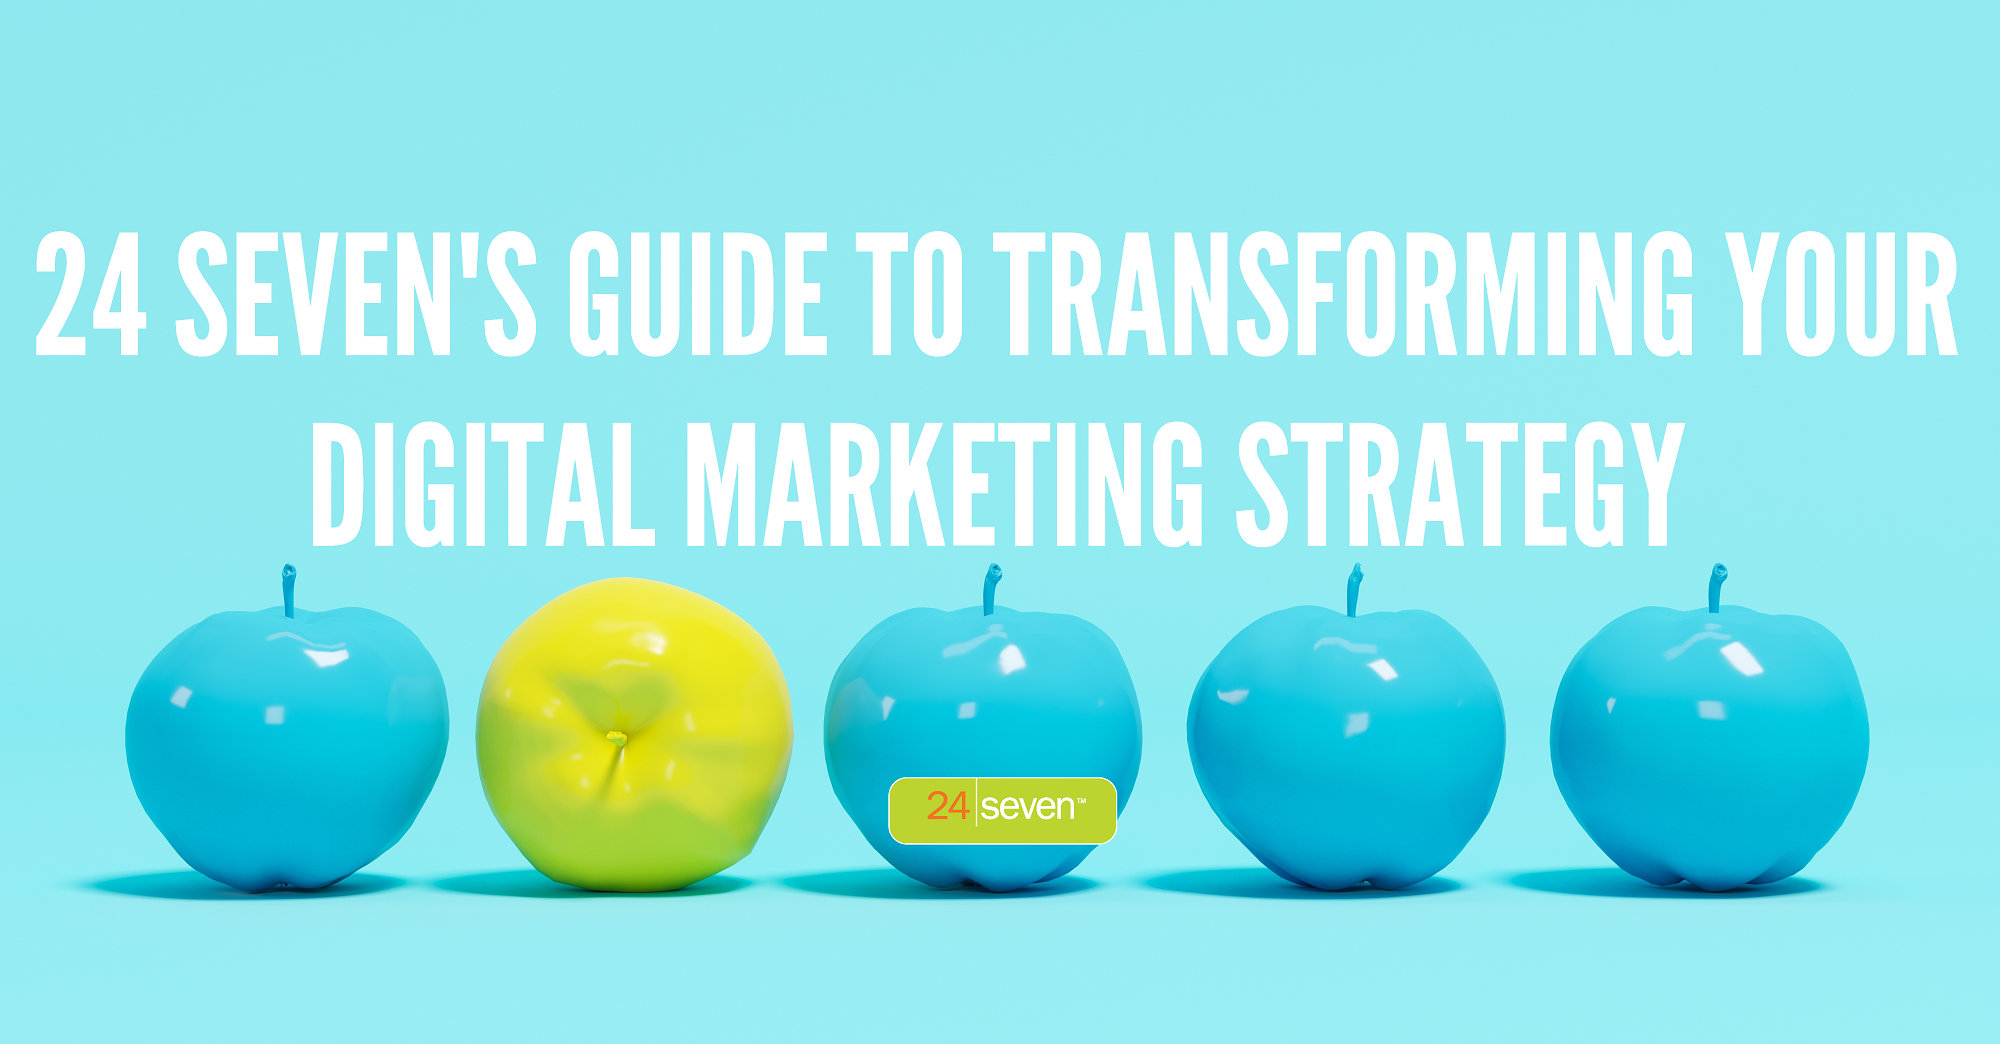 24 Sevens Guide To Transforming Digital Marketing Strategy